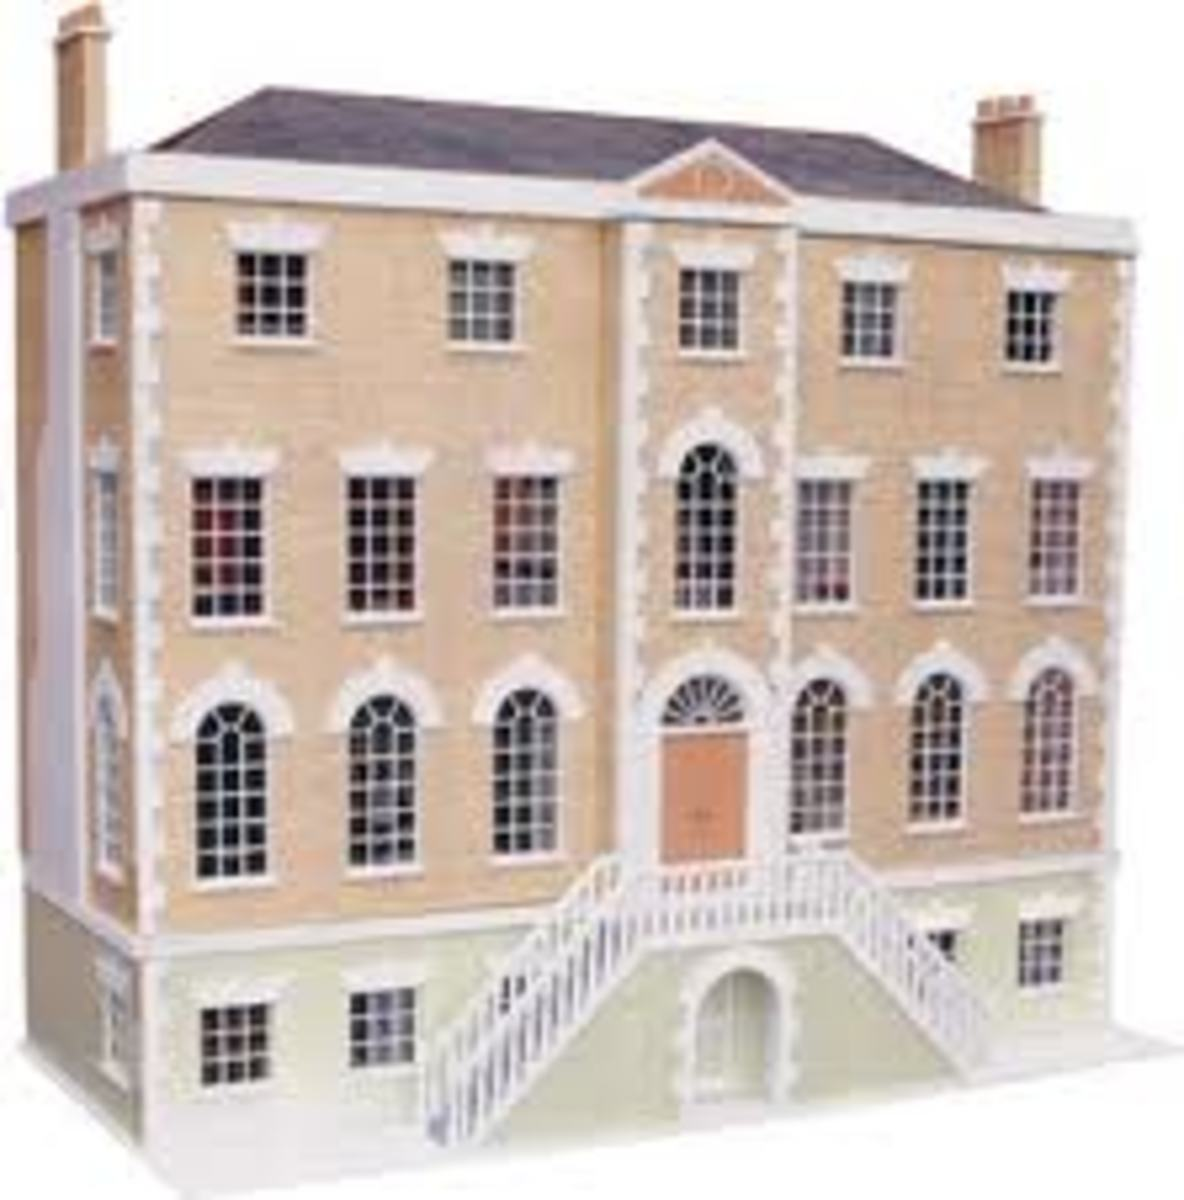 Doll Houses: Their Origin and Educational Play Benefits.